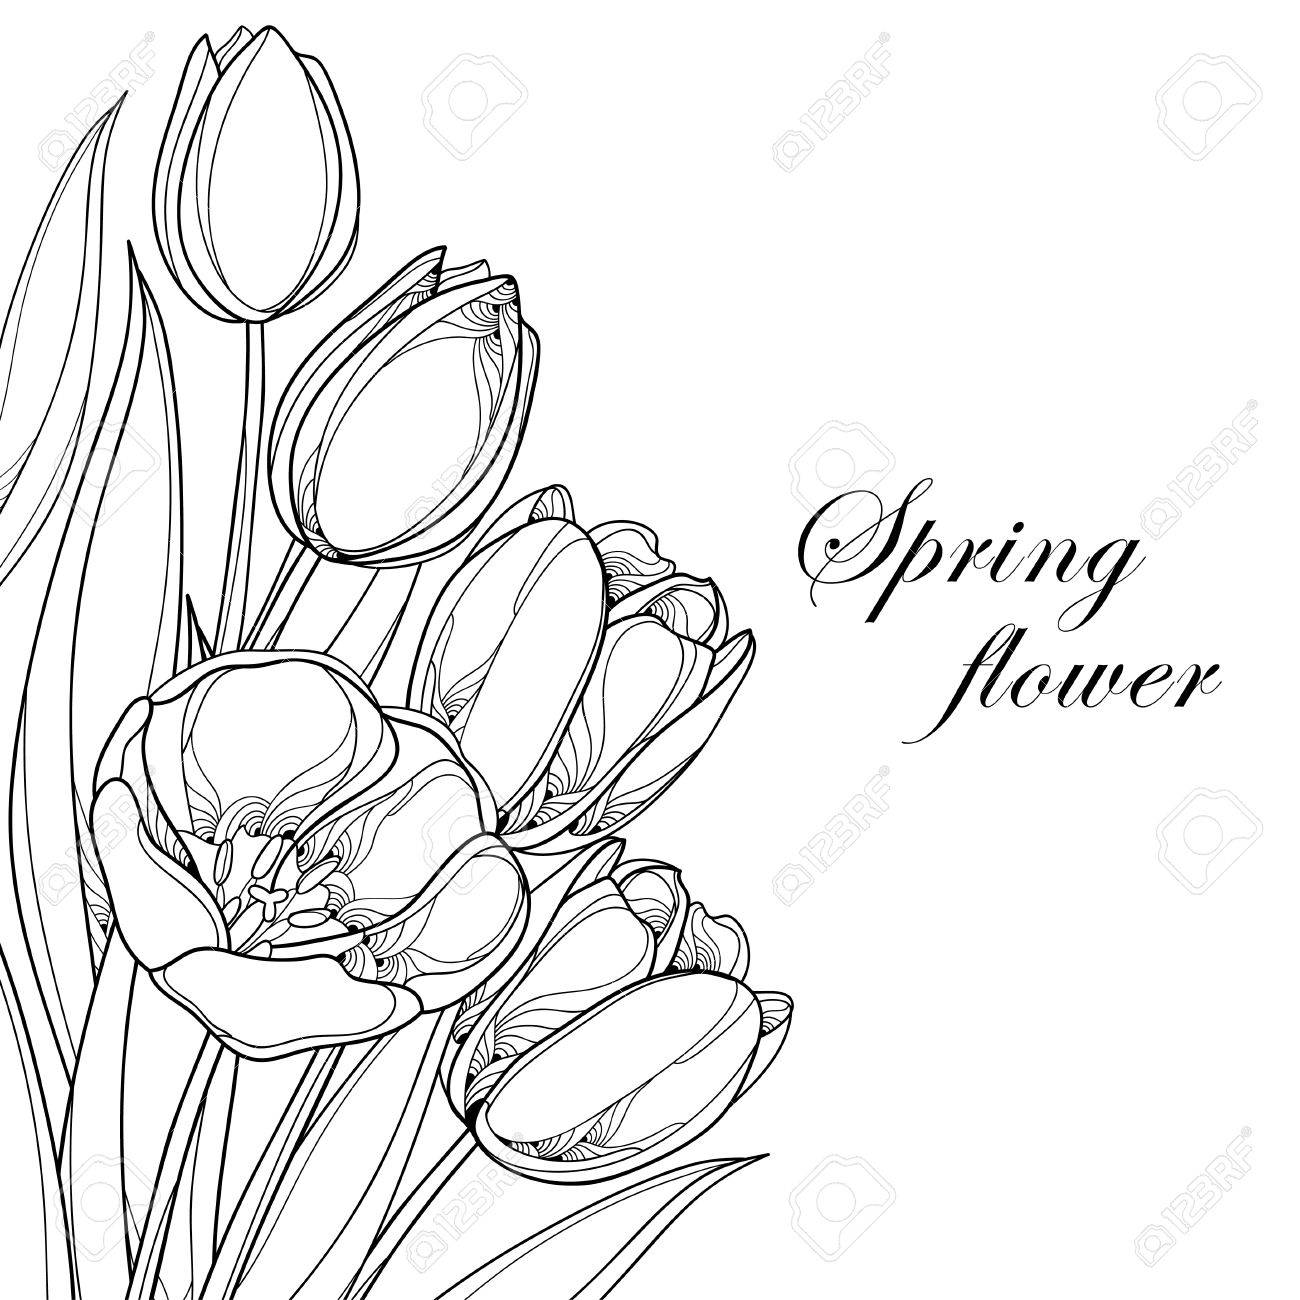 Outline images of bunch of flowers flowers healthy 1300x1300 vector bouquet with outline tulips flowers isolated on white tulip outline drawing at getdrawings free for personal use izmirmasajfo